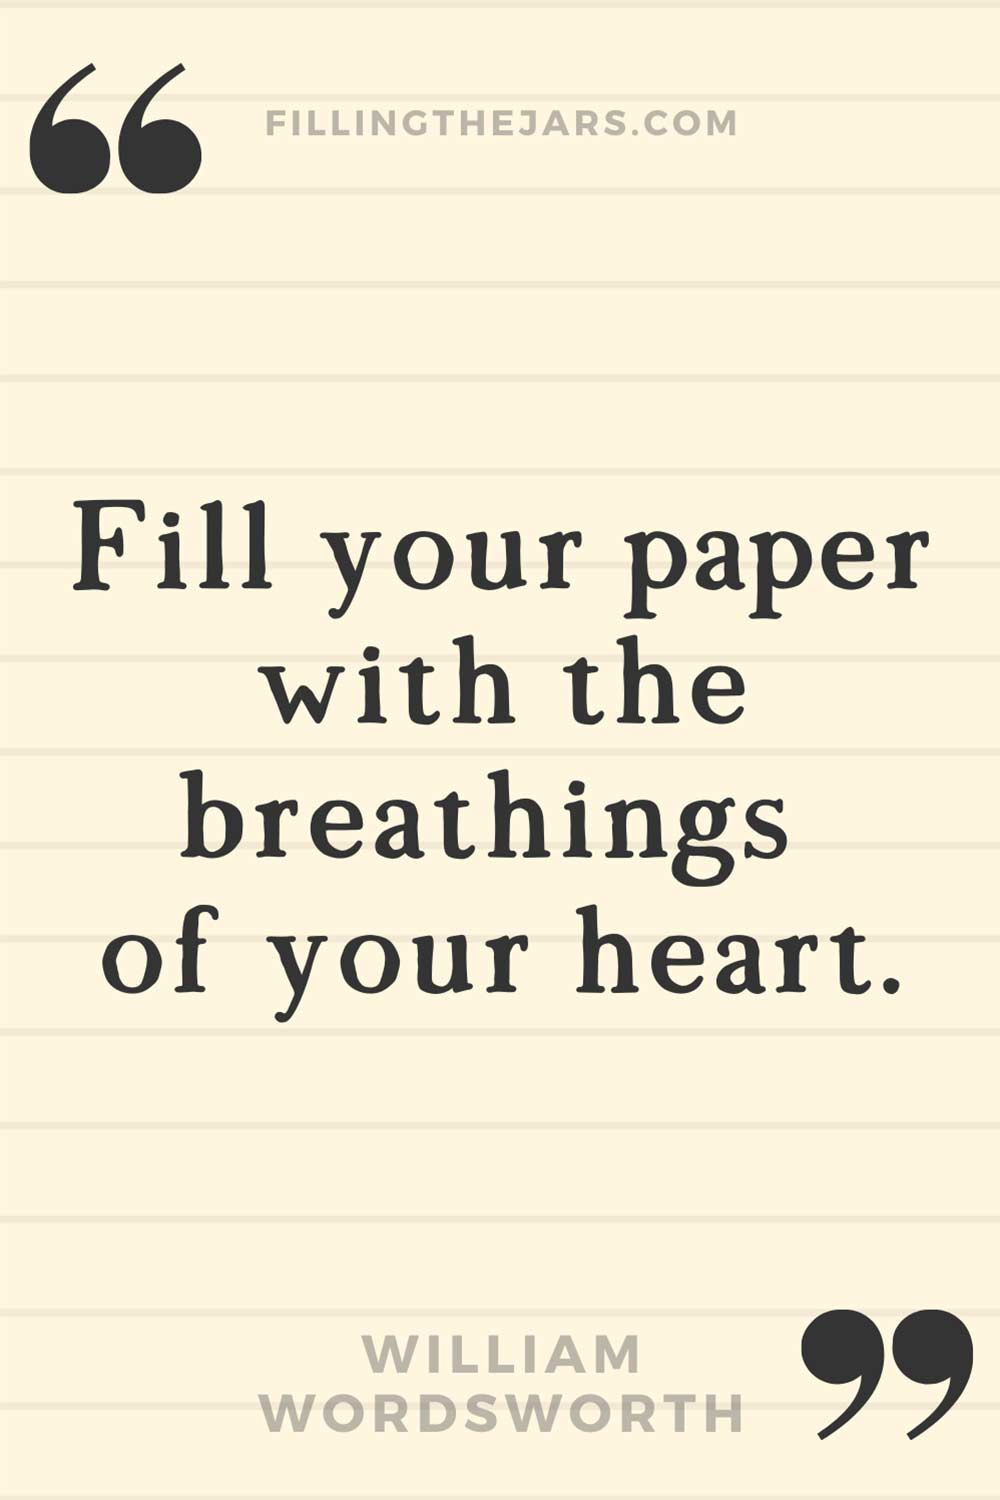 William Wordsworth quote 'Fill your paper with the breathings of your heart.' on lightly lined background.